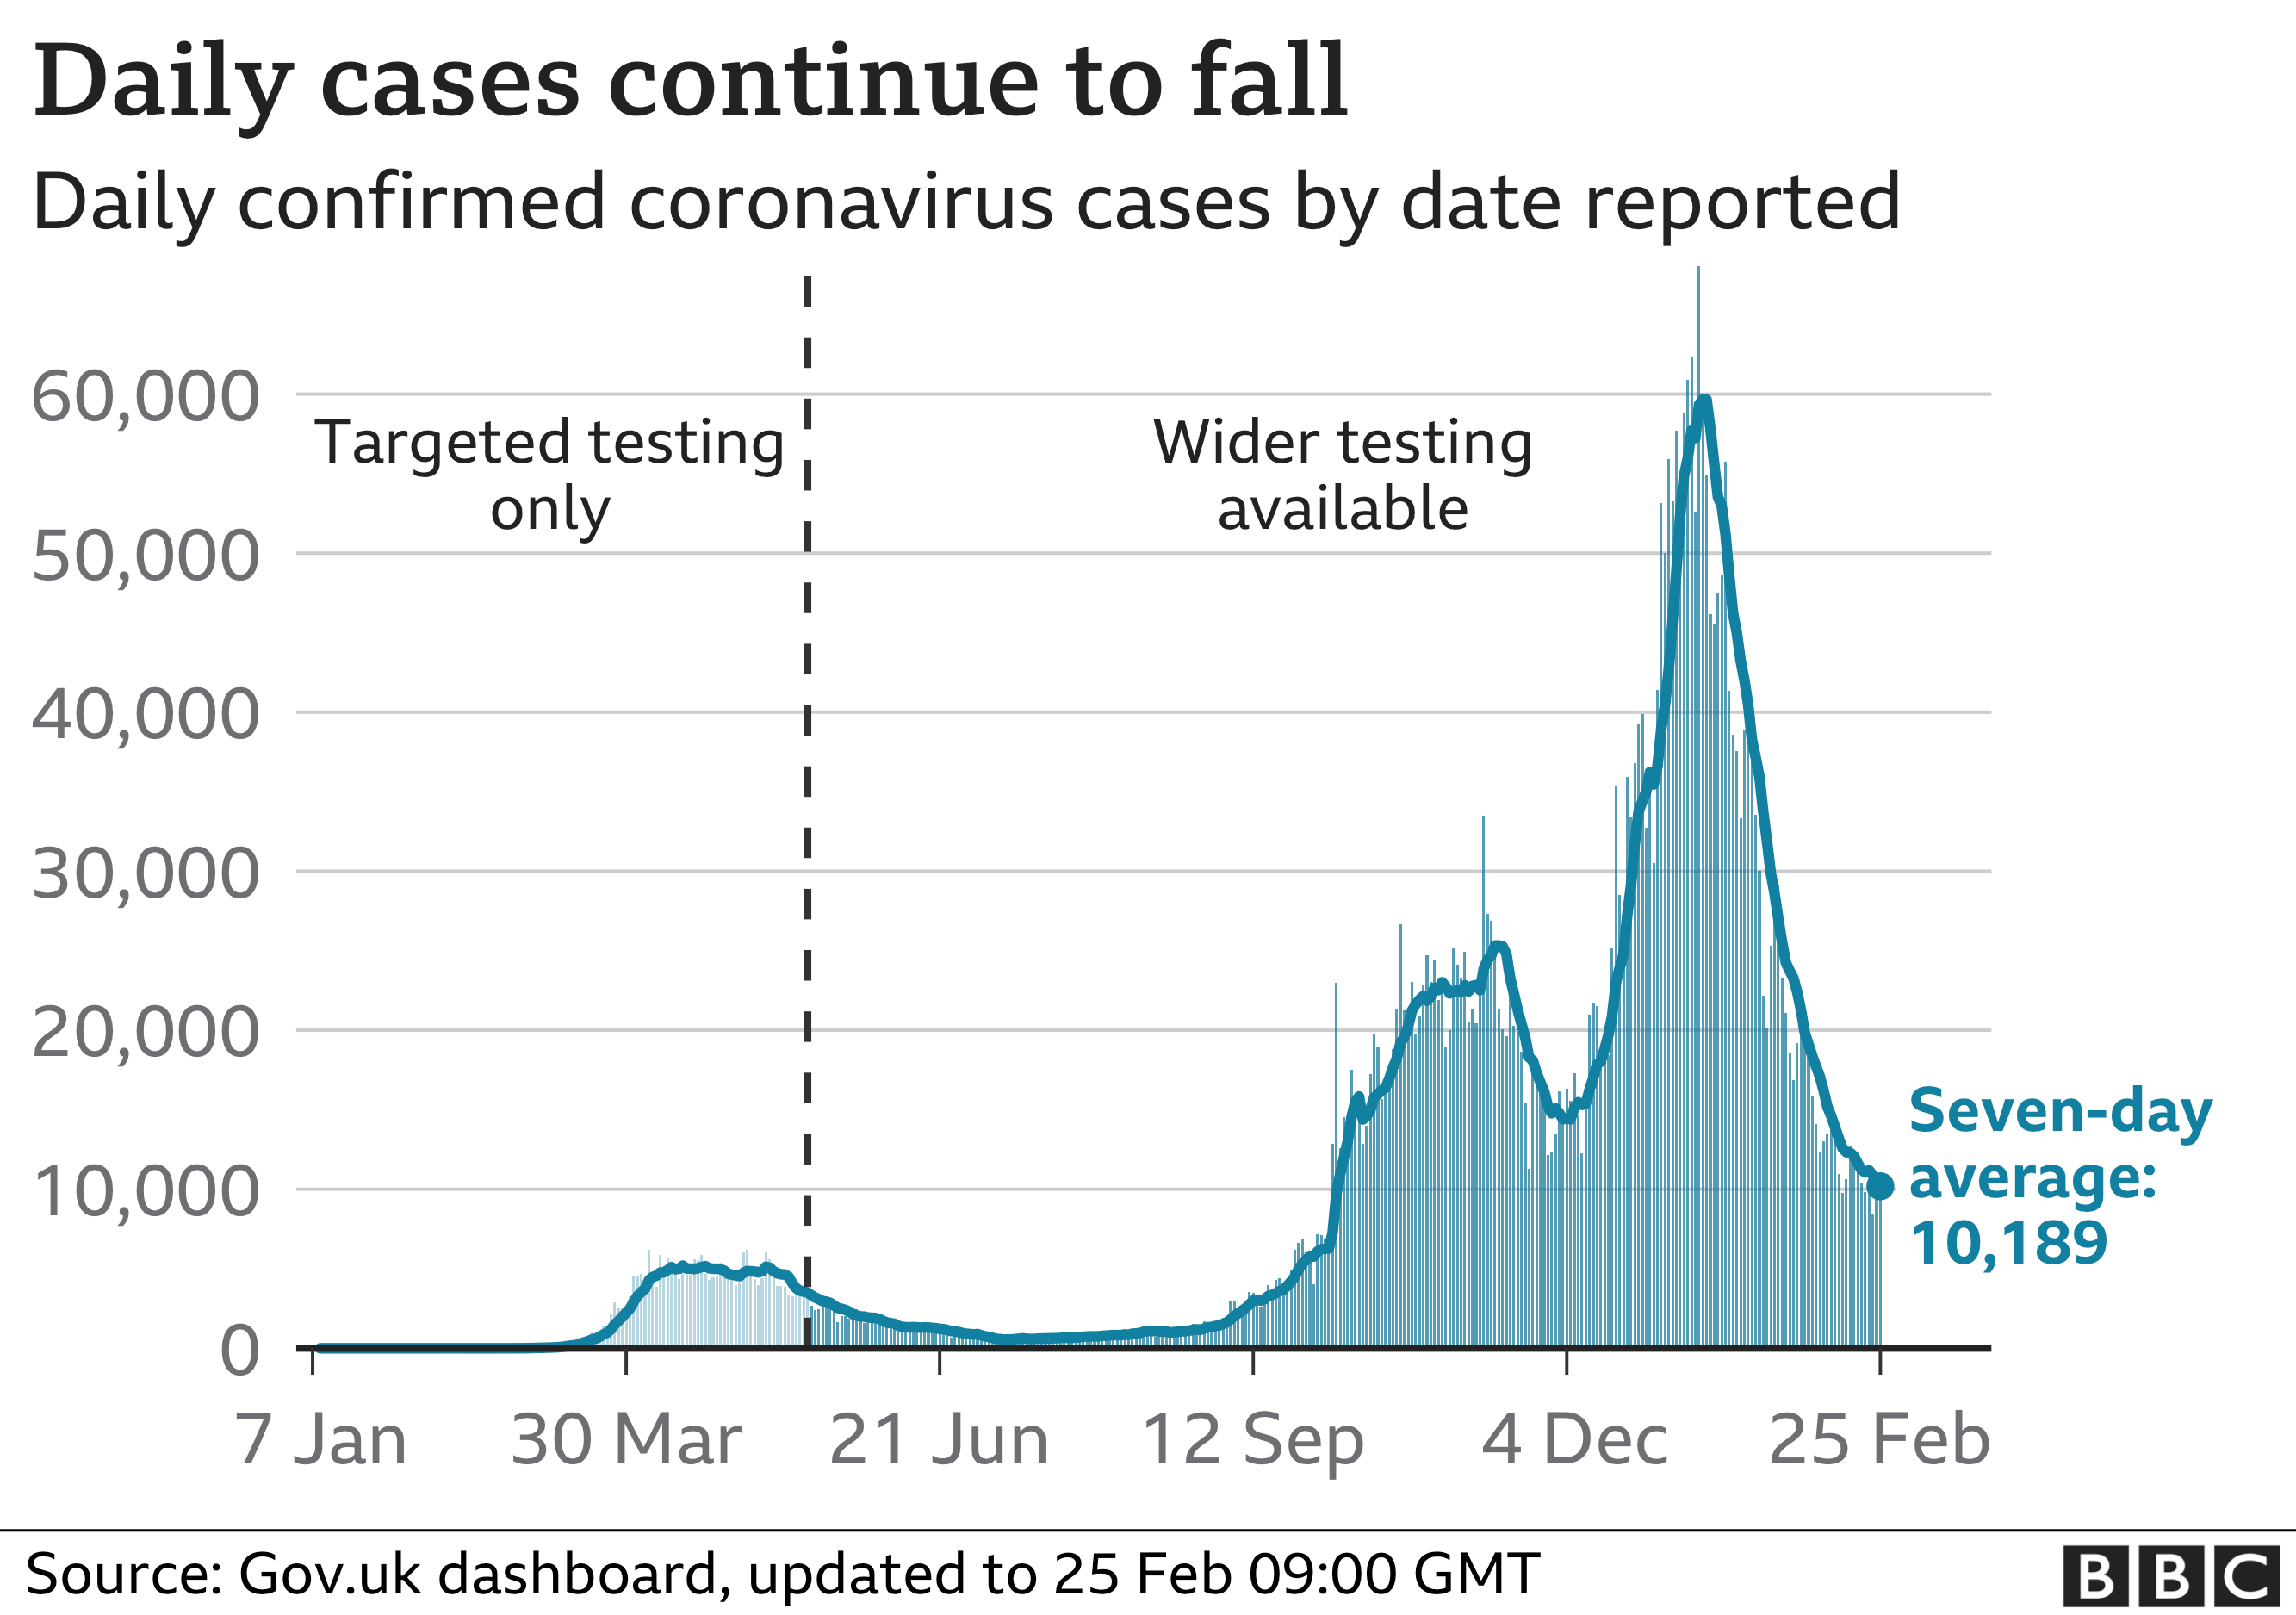 Chart showing cases continuing to fall